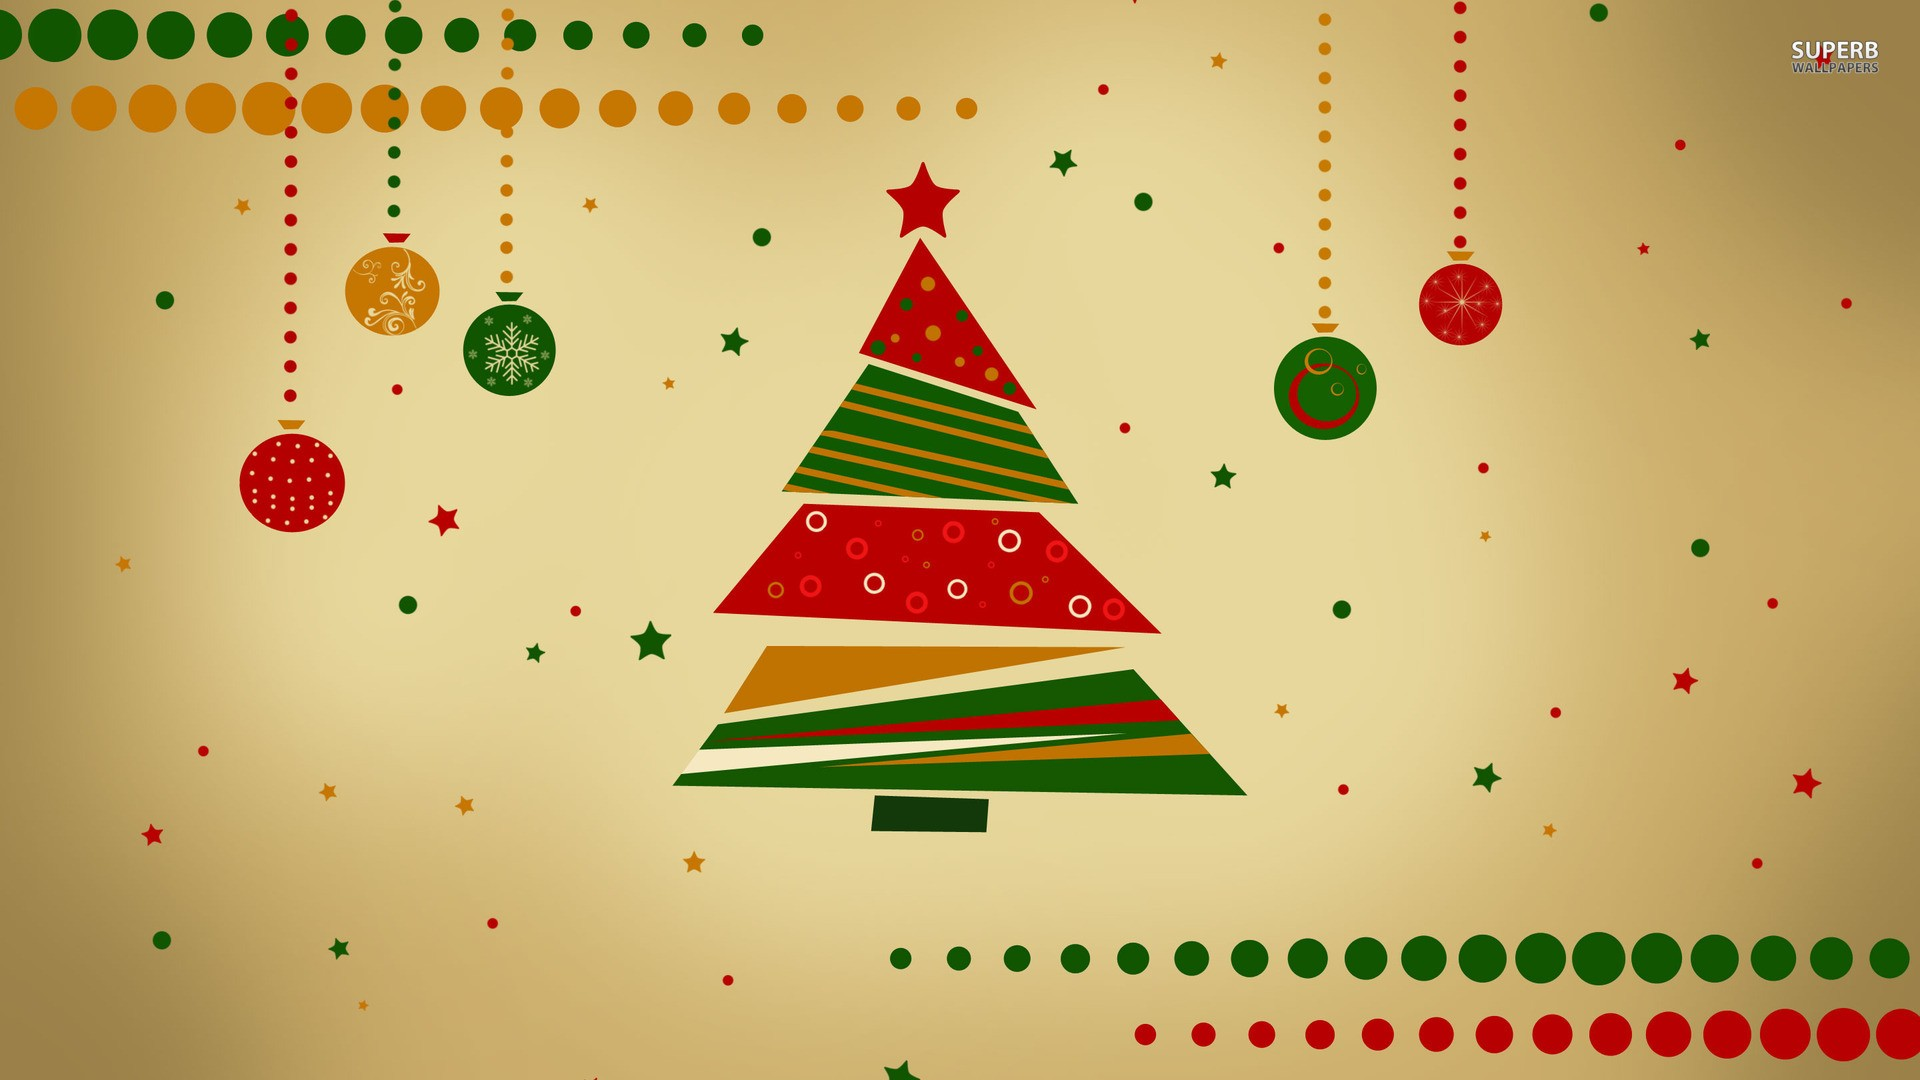 Vintage Christmas background Download stunning 1920x1080